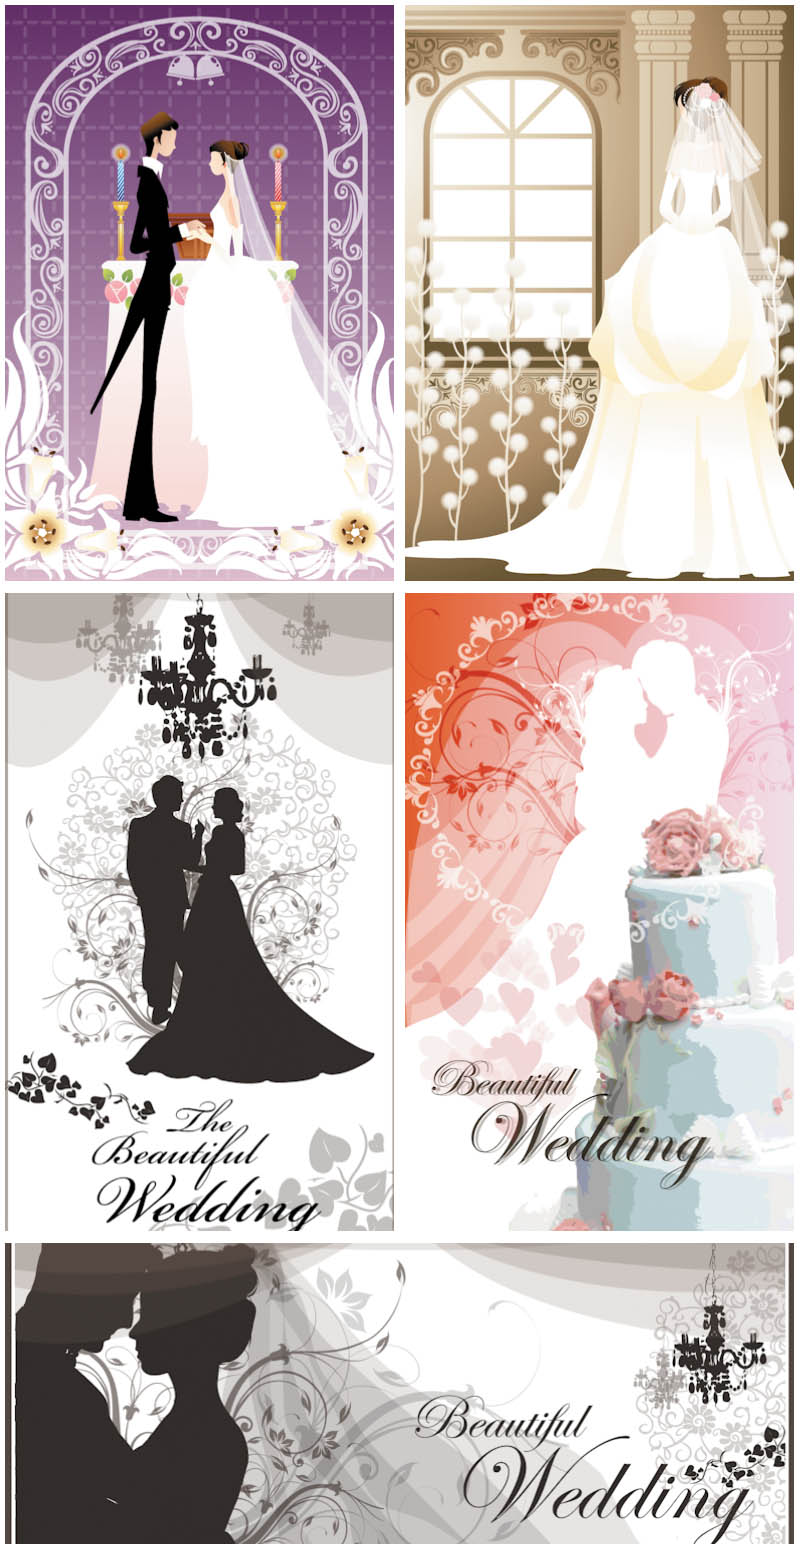 Beautiful Wedding cards vector